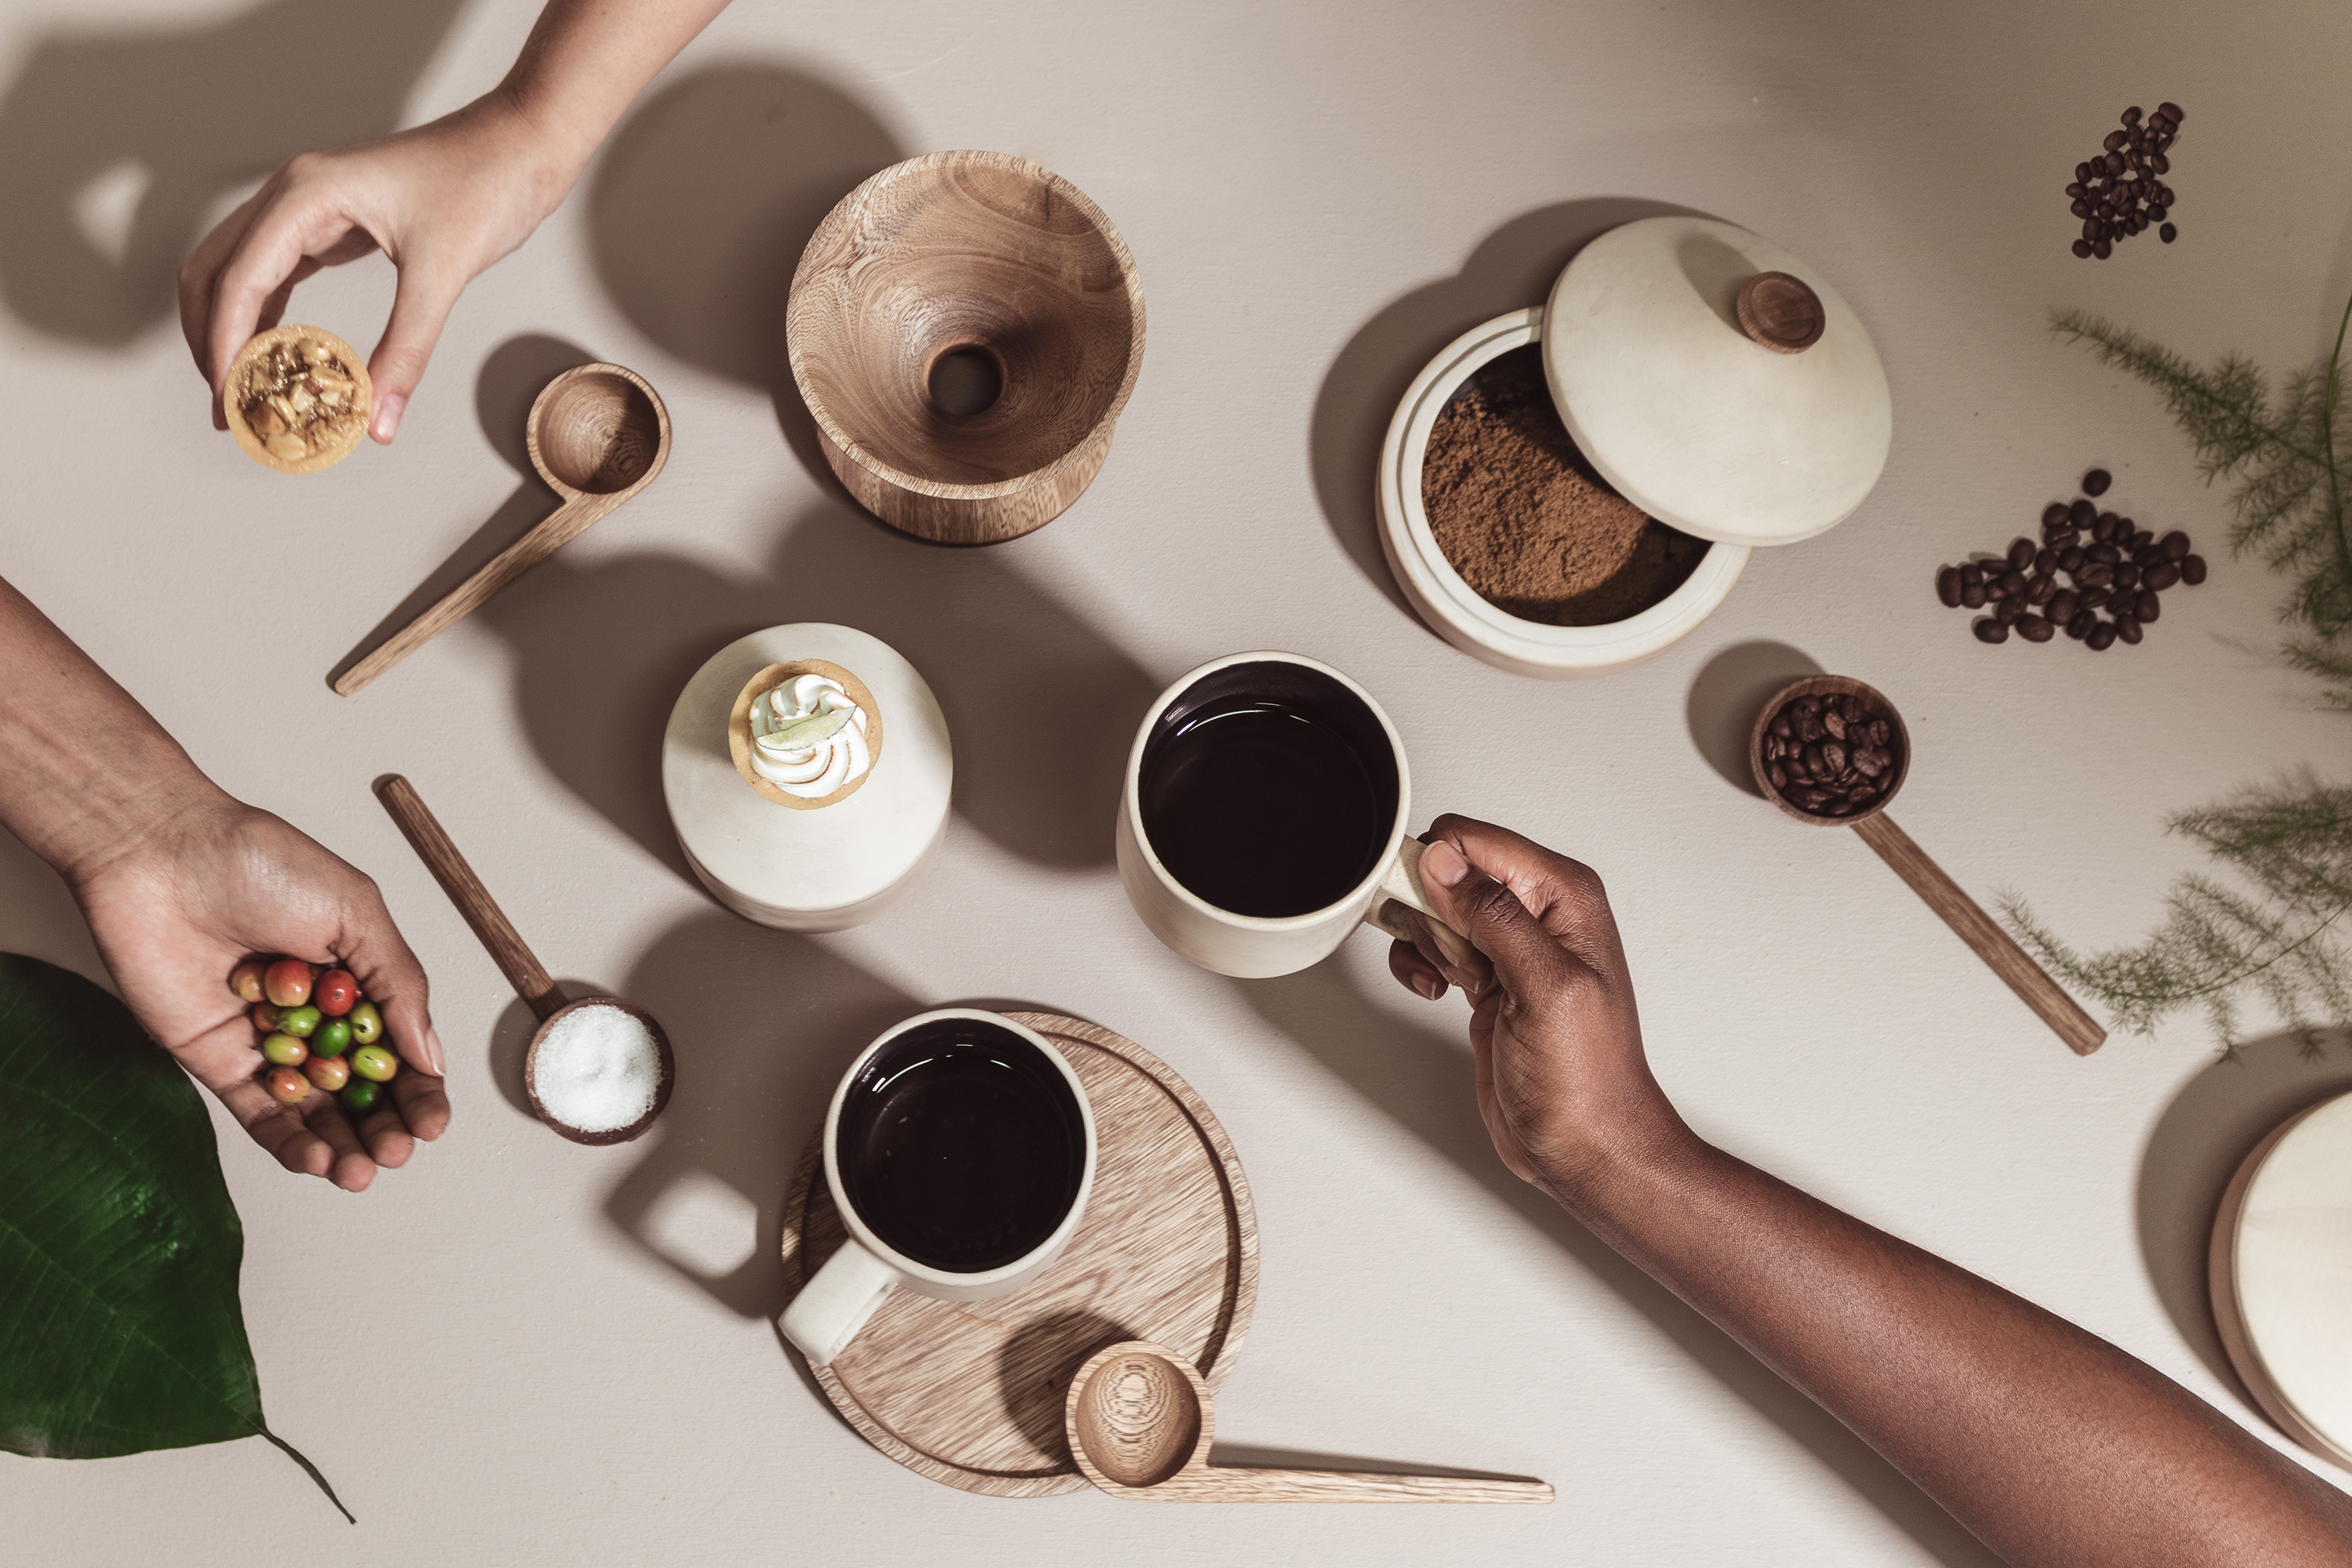 home goods inspired by coffee